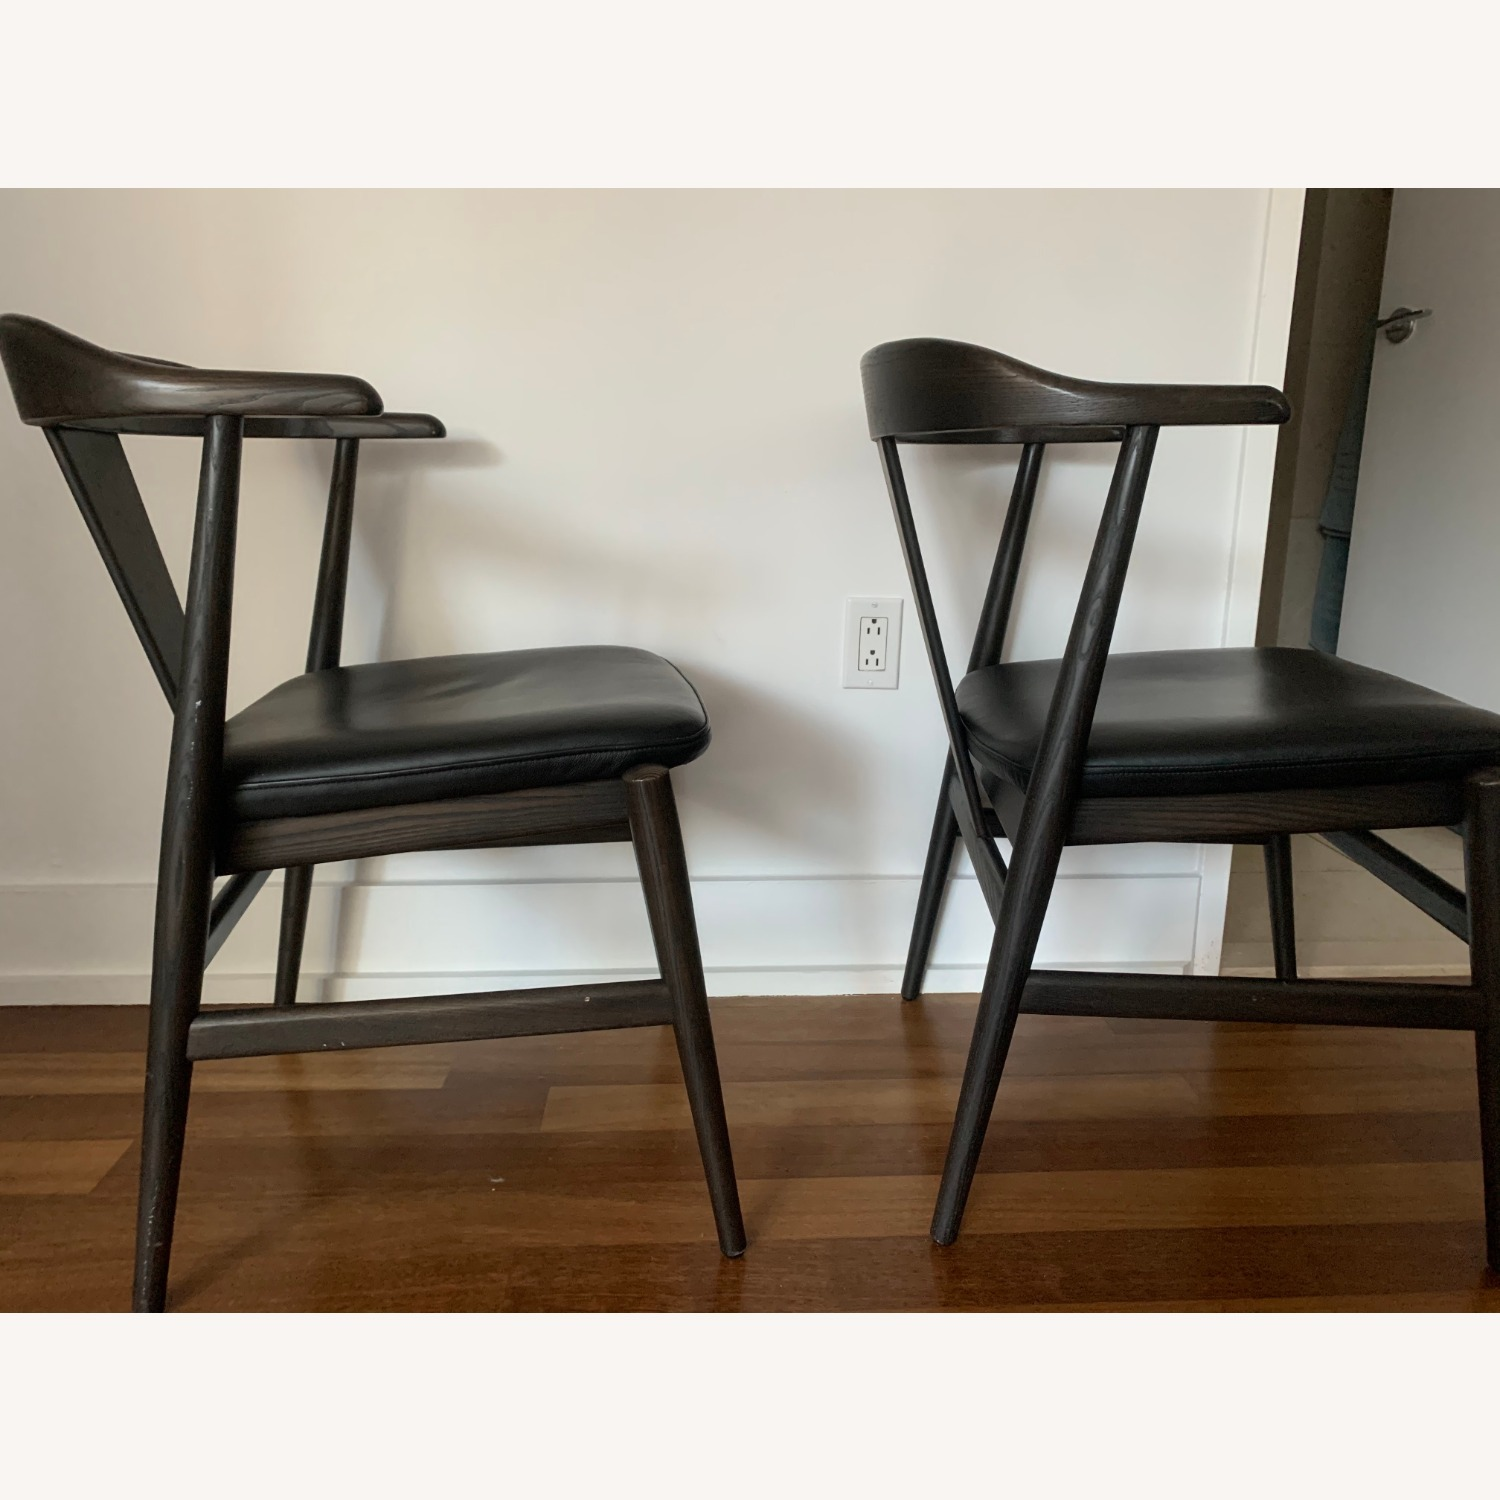 Room and Board Evans Chairs with Leather seats - image-7